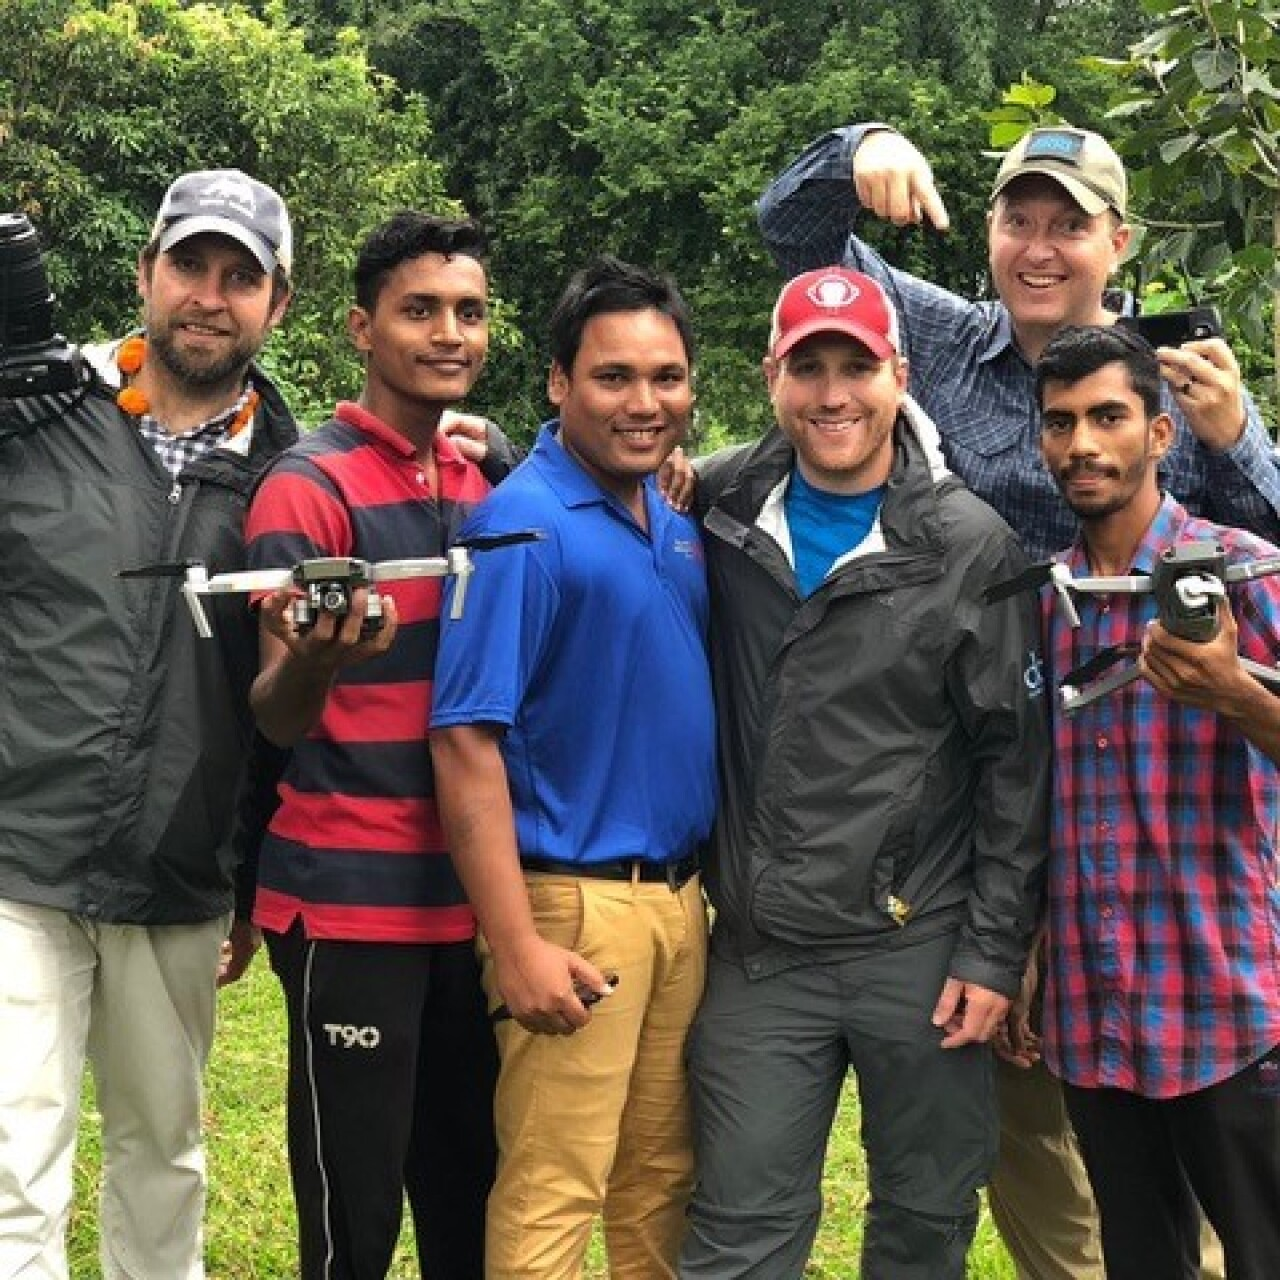 The camera crew and local men are outside in front of trees and brush standing for a group photo; there are six men total. A man on either side are holding drones.